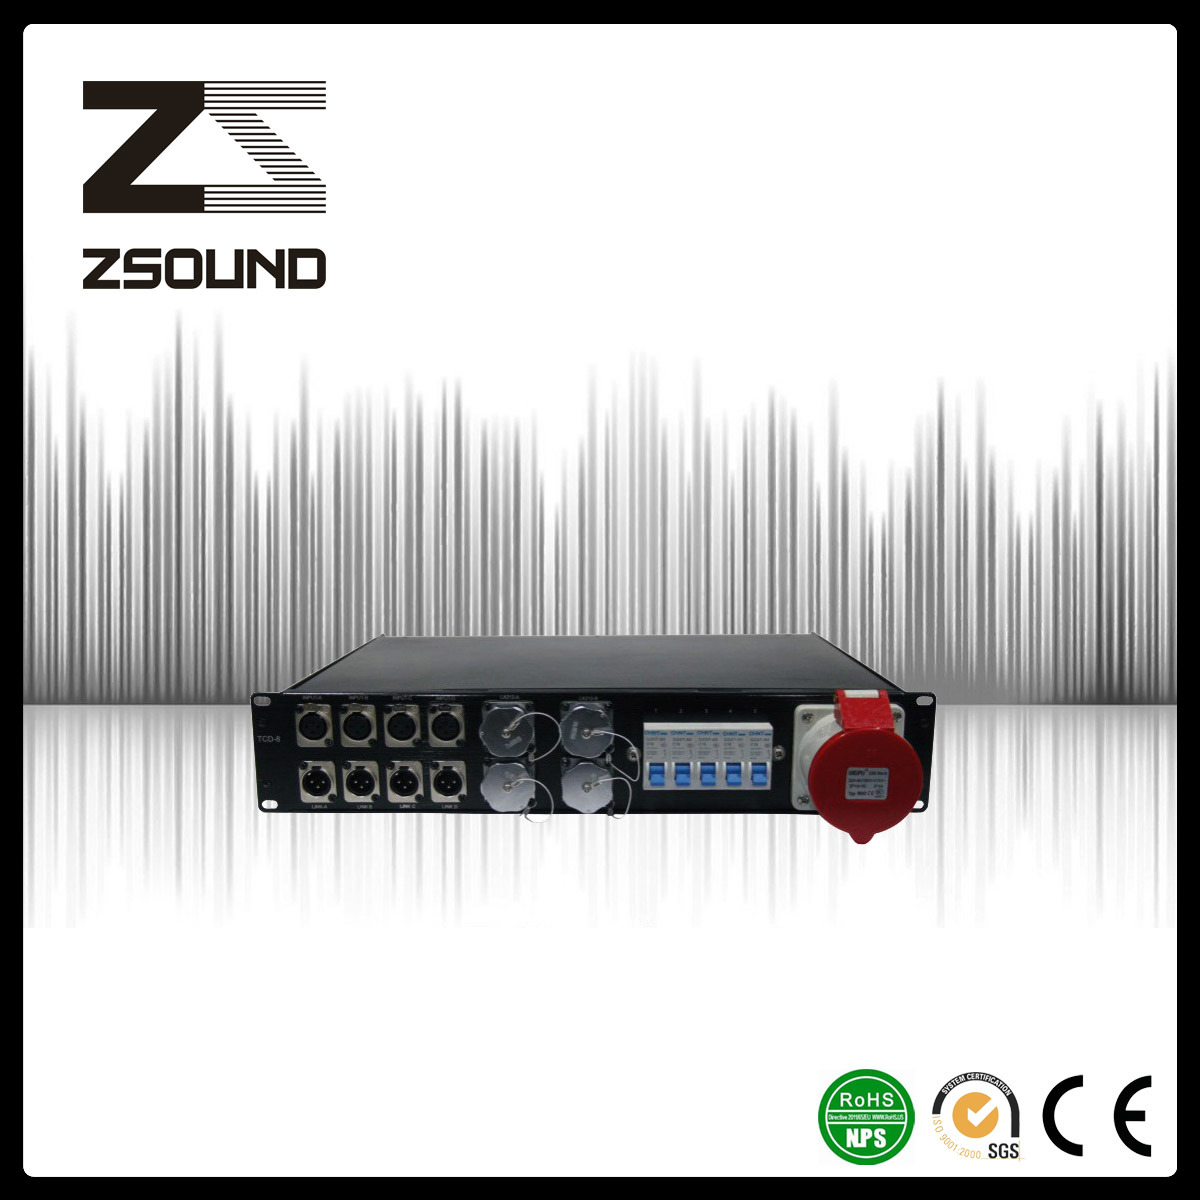 Zsound Tcd-8 Touring Line Array System Power Distribution Box